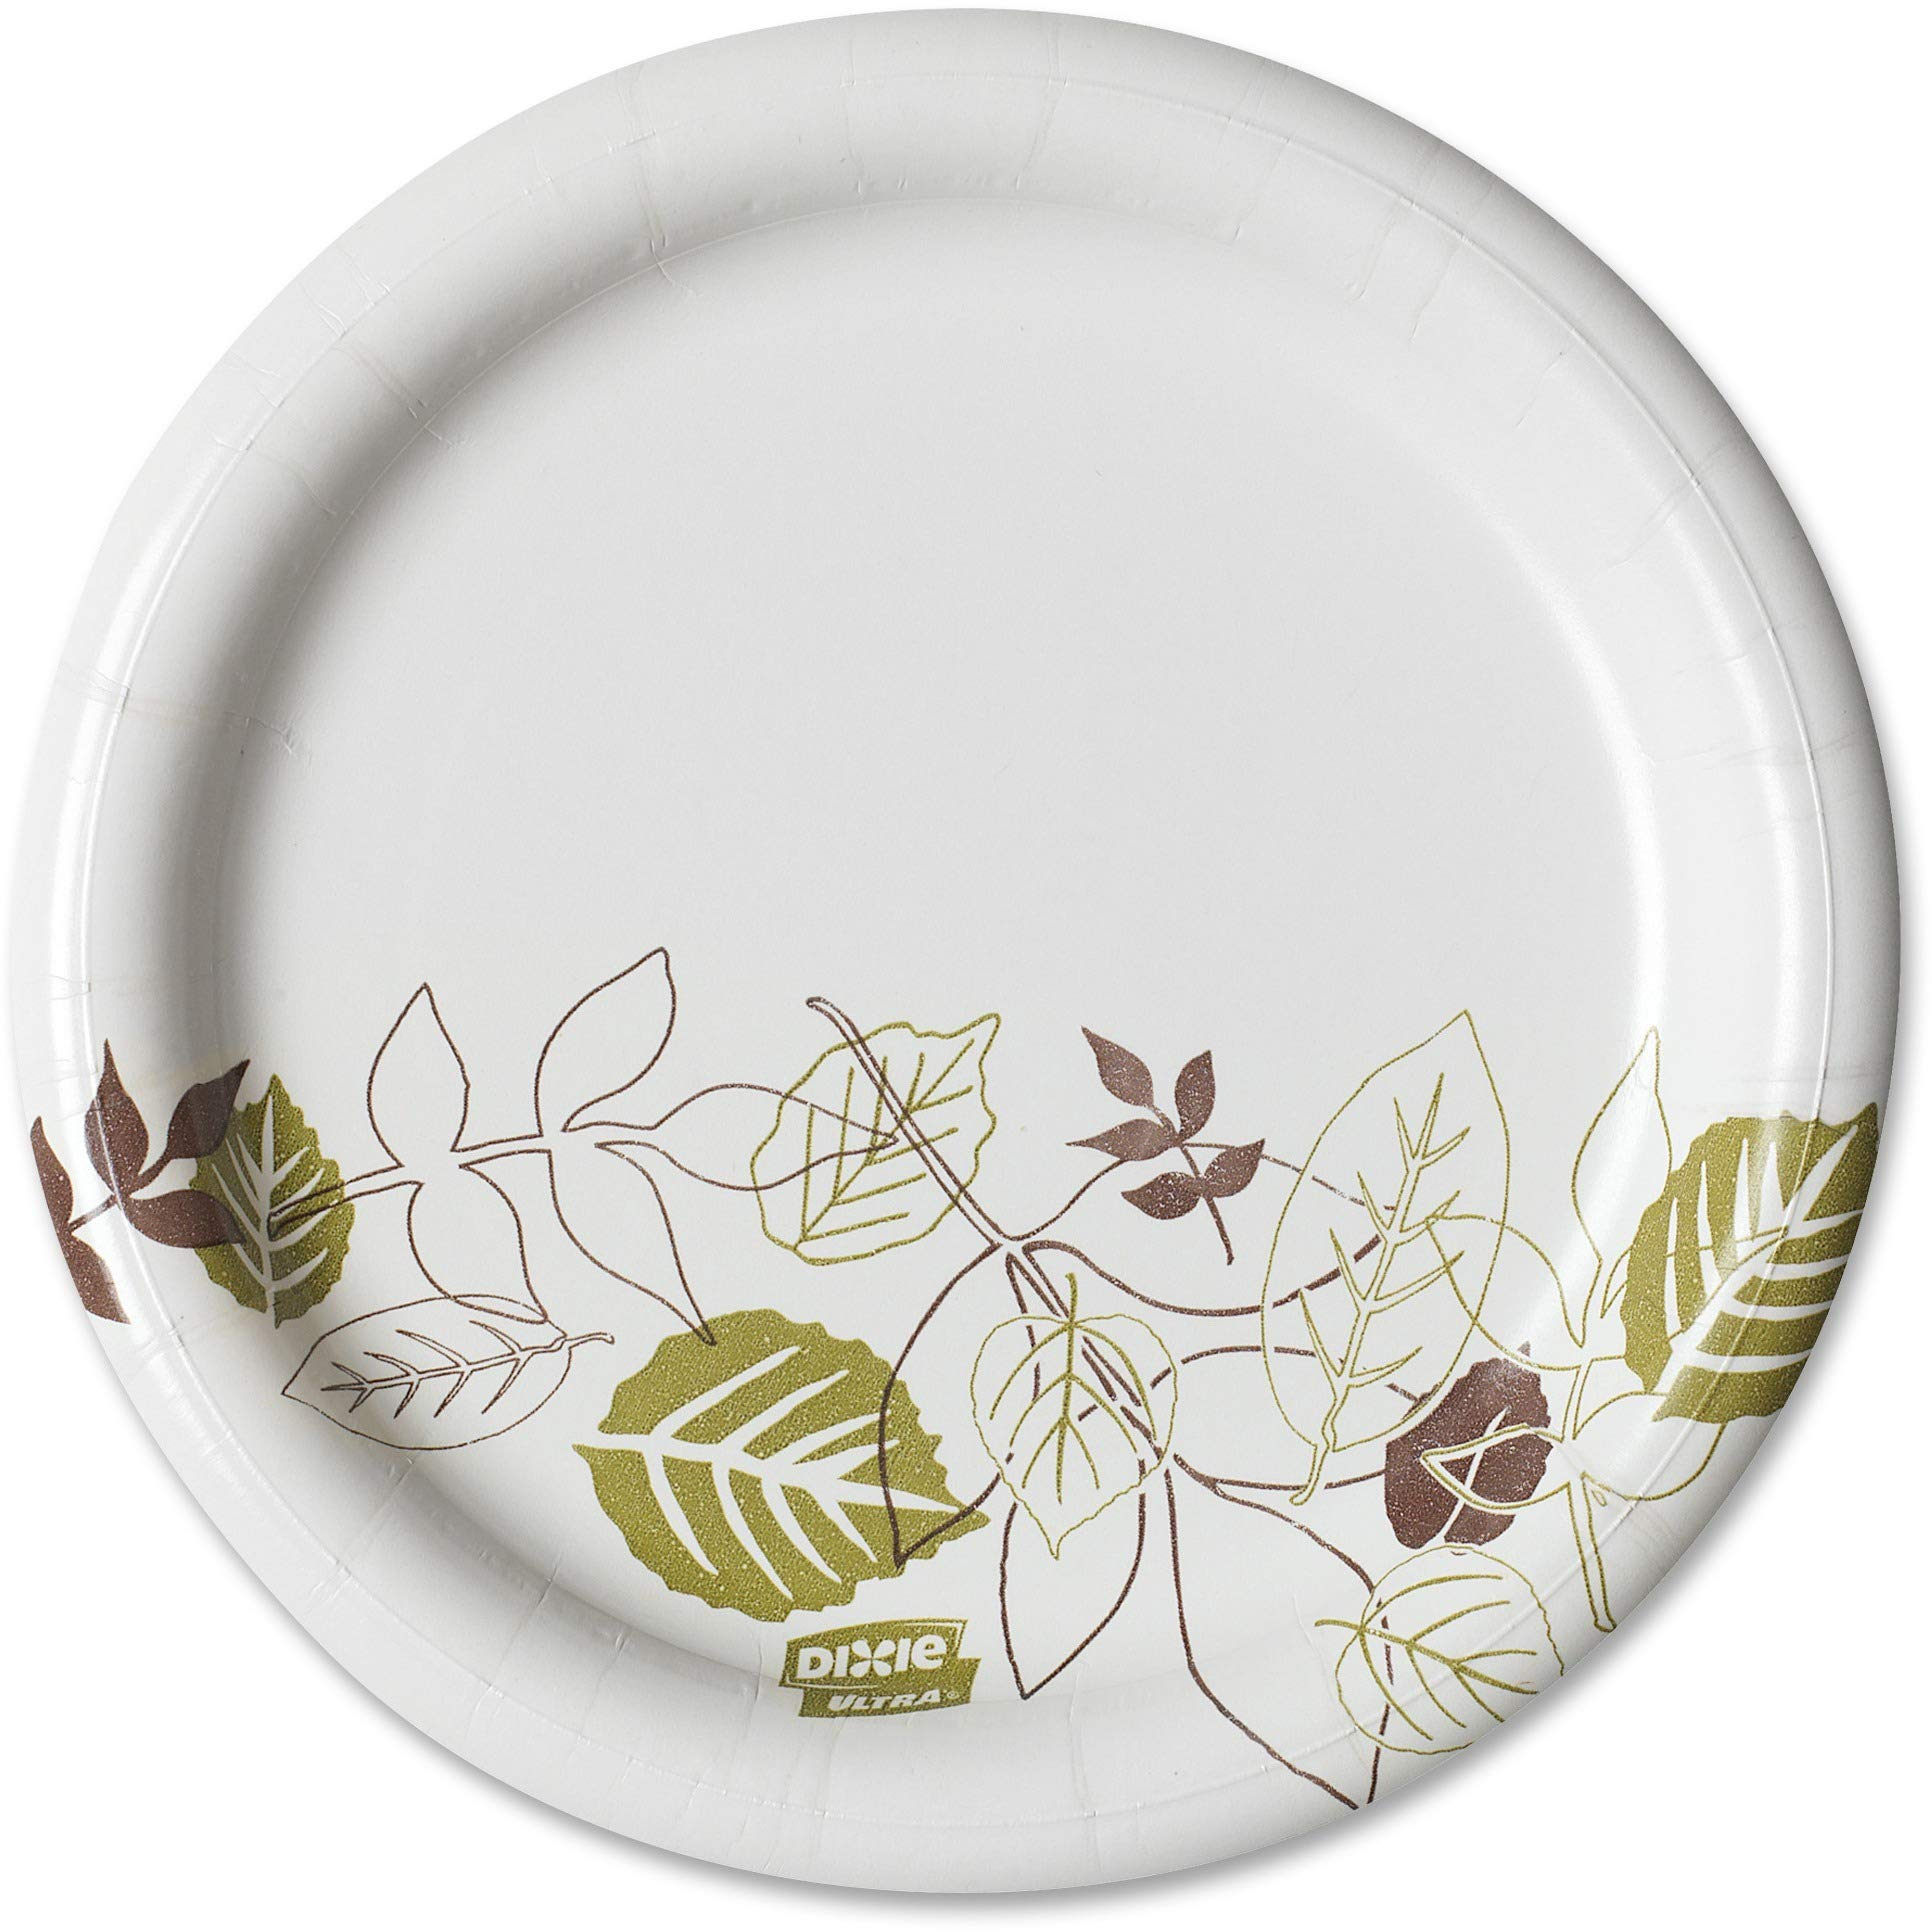 Pathways Dixie Ultra 10Heavy-Weight Paper Plates by GP PRO 500 Count SXP10PATH Georgia-Pacific 125 Plates Per Pack, 4 Packs Per Case - 2 Pack